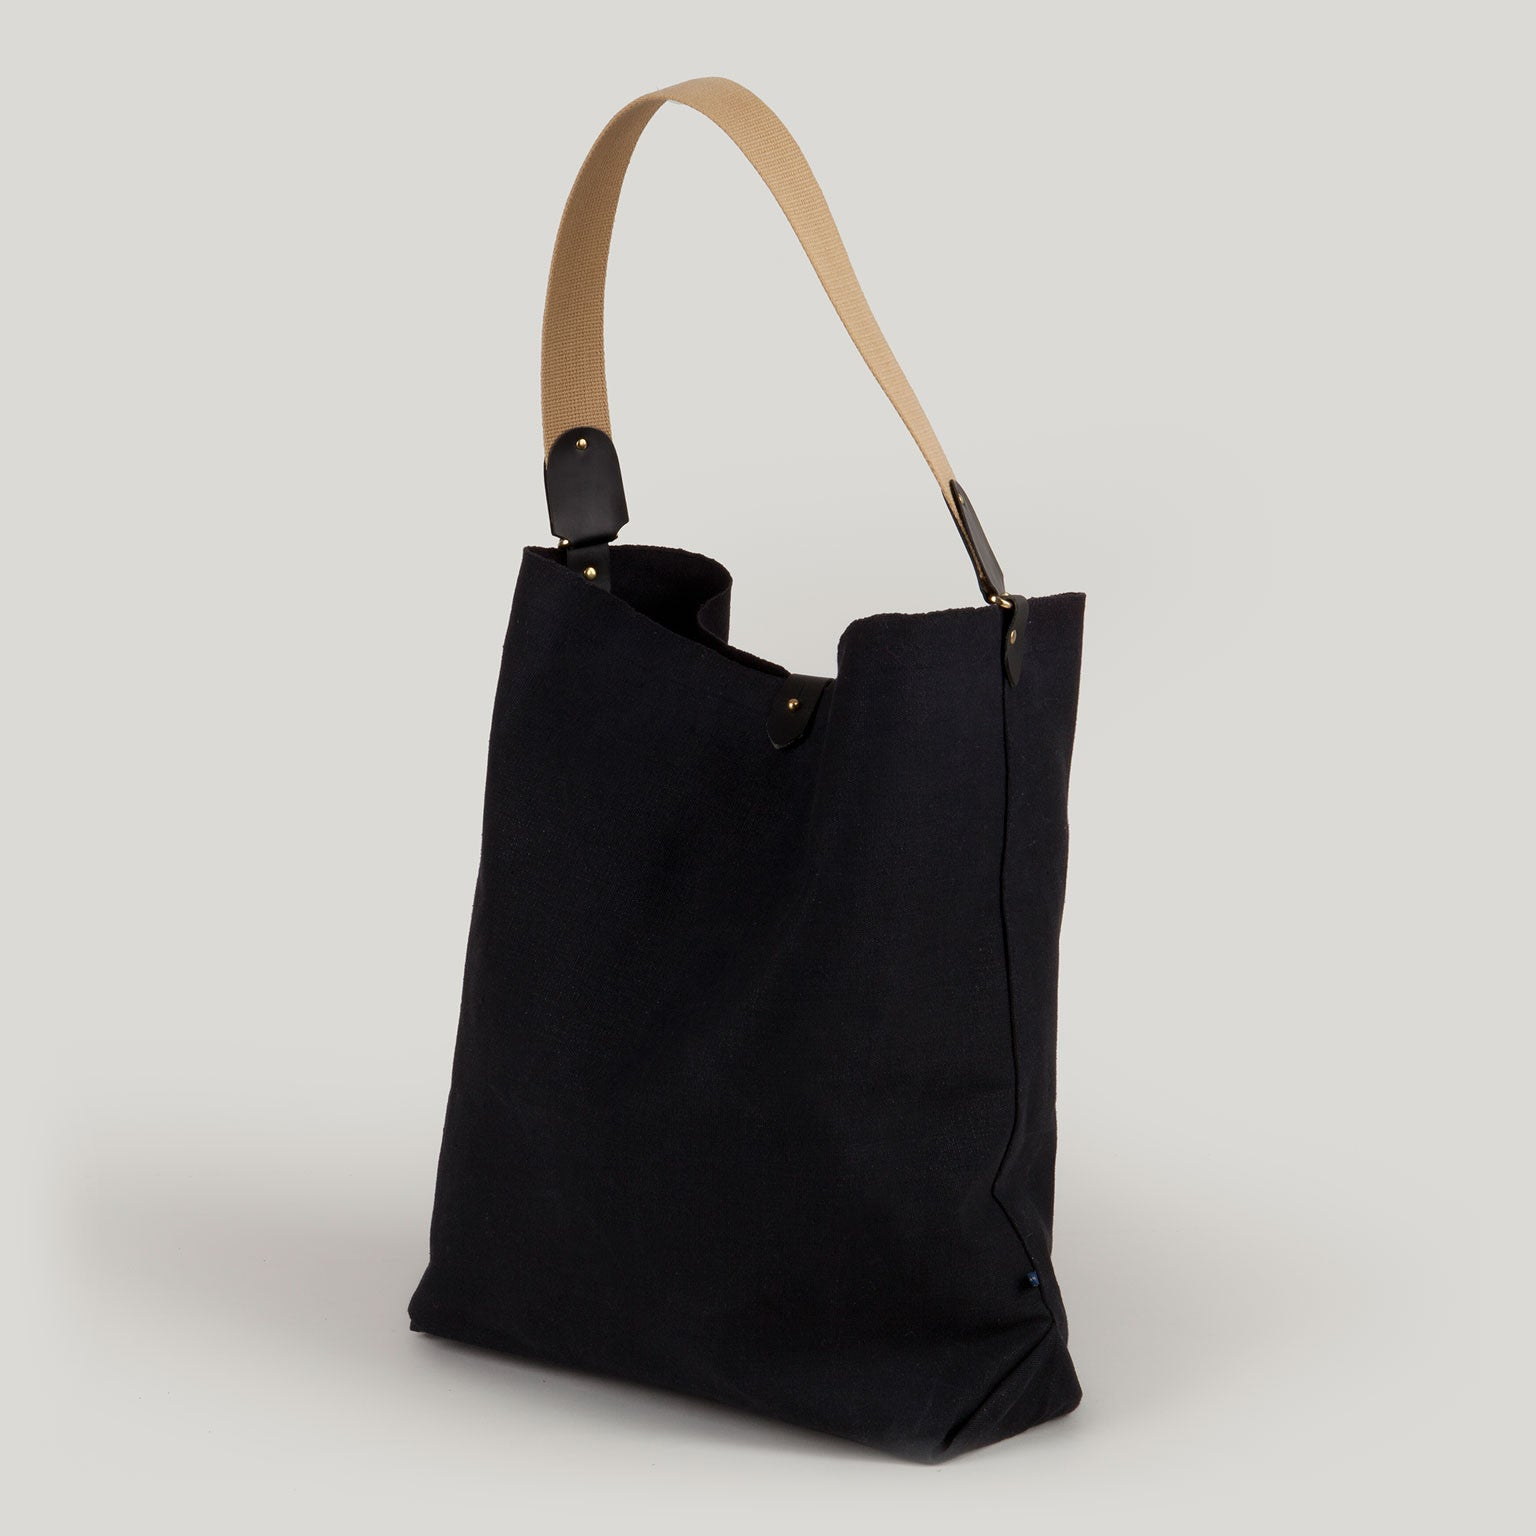 SCARLETT <br/> Canvas Tote Bag <br/> Black